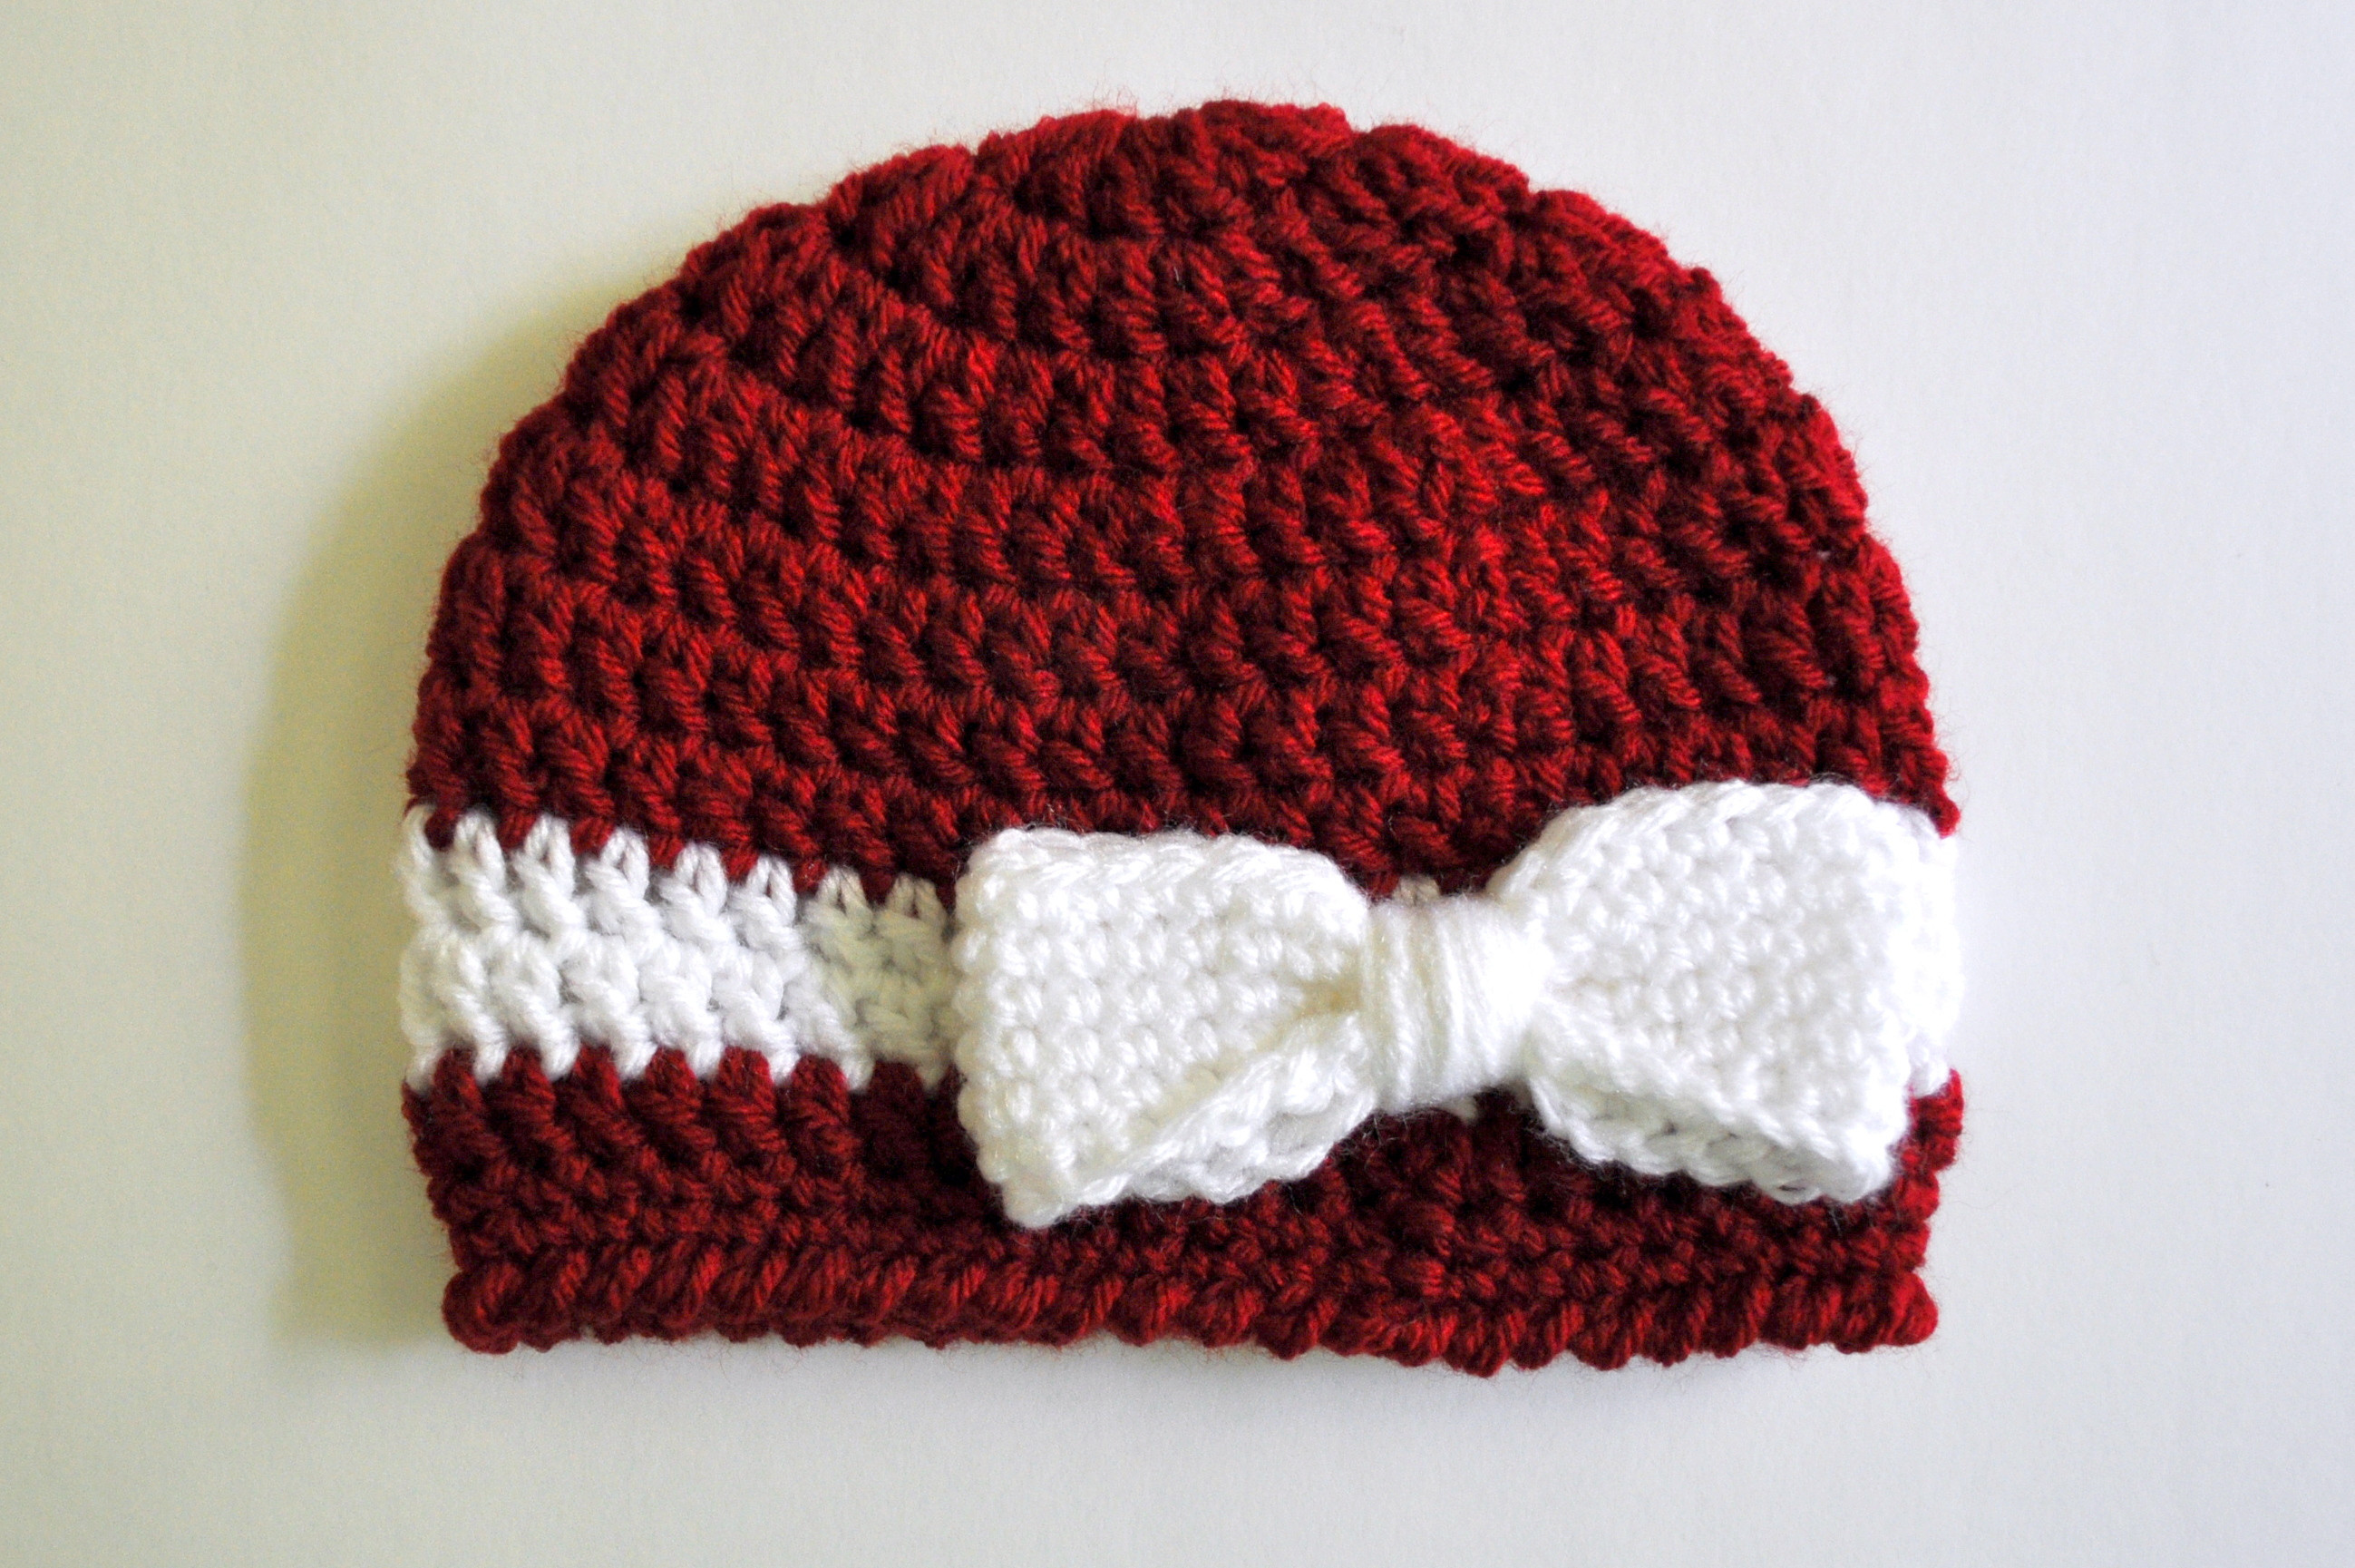 Free Knitting Patterns for Baby Hats Best Of Free Crochet Patterns for Girls Hats Of Perfect 44 Models Free Knitting Patterns for Baby Hats